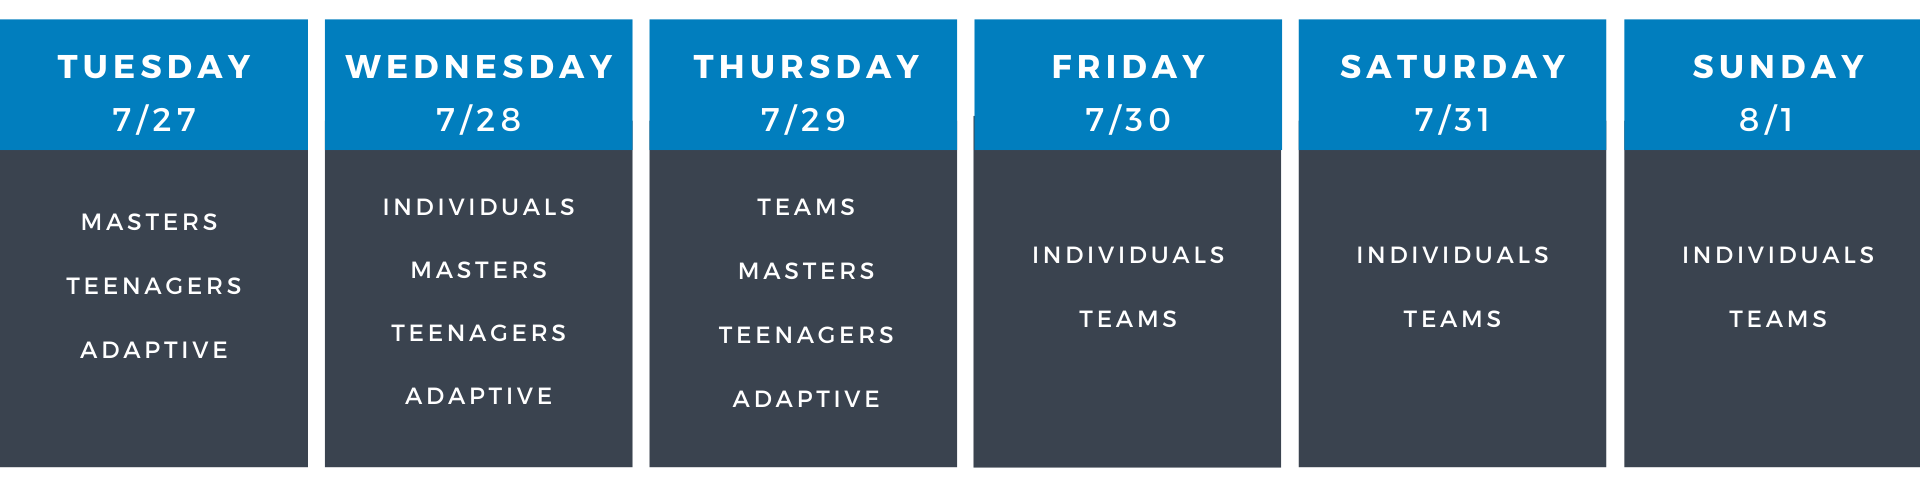 Divisions Schedule